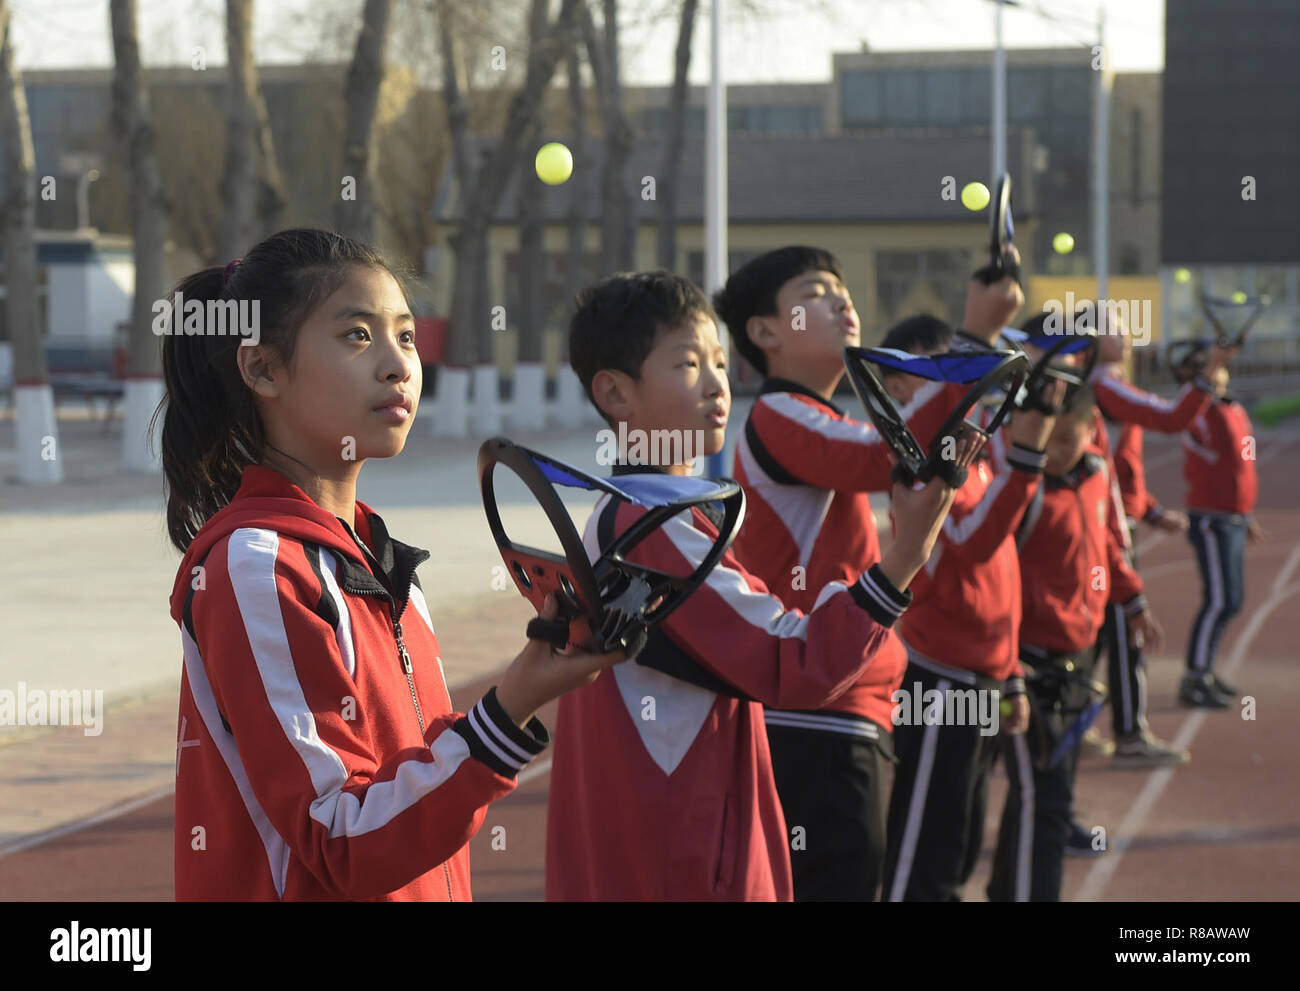 Gu'an, China's Hebei Province. 14th Dec, 2018. Students practise catching balls at Nanzhaogezhuang primary school in Gu'an County, north China's Hebei Province, Dec. 14, 2018. Various extracurricular classes are provided in Nanzhaogezhuang primary school to enrich the school life of students. Credit: Lu Peng/Xinhua/Alamy Live News - Stock Image